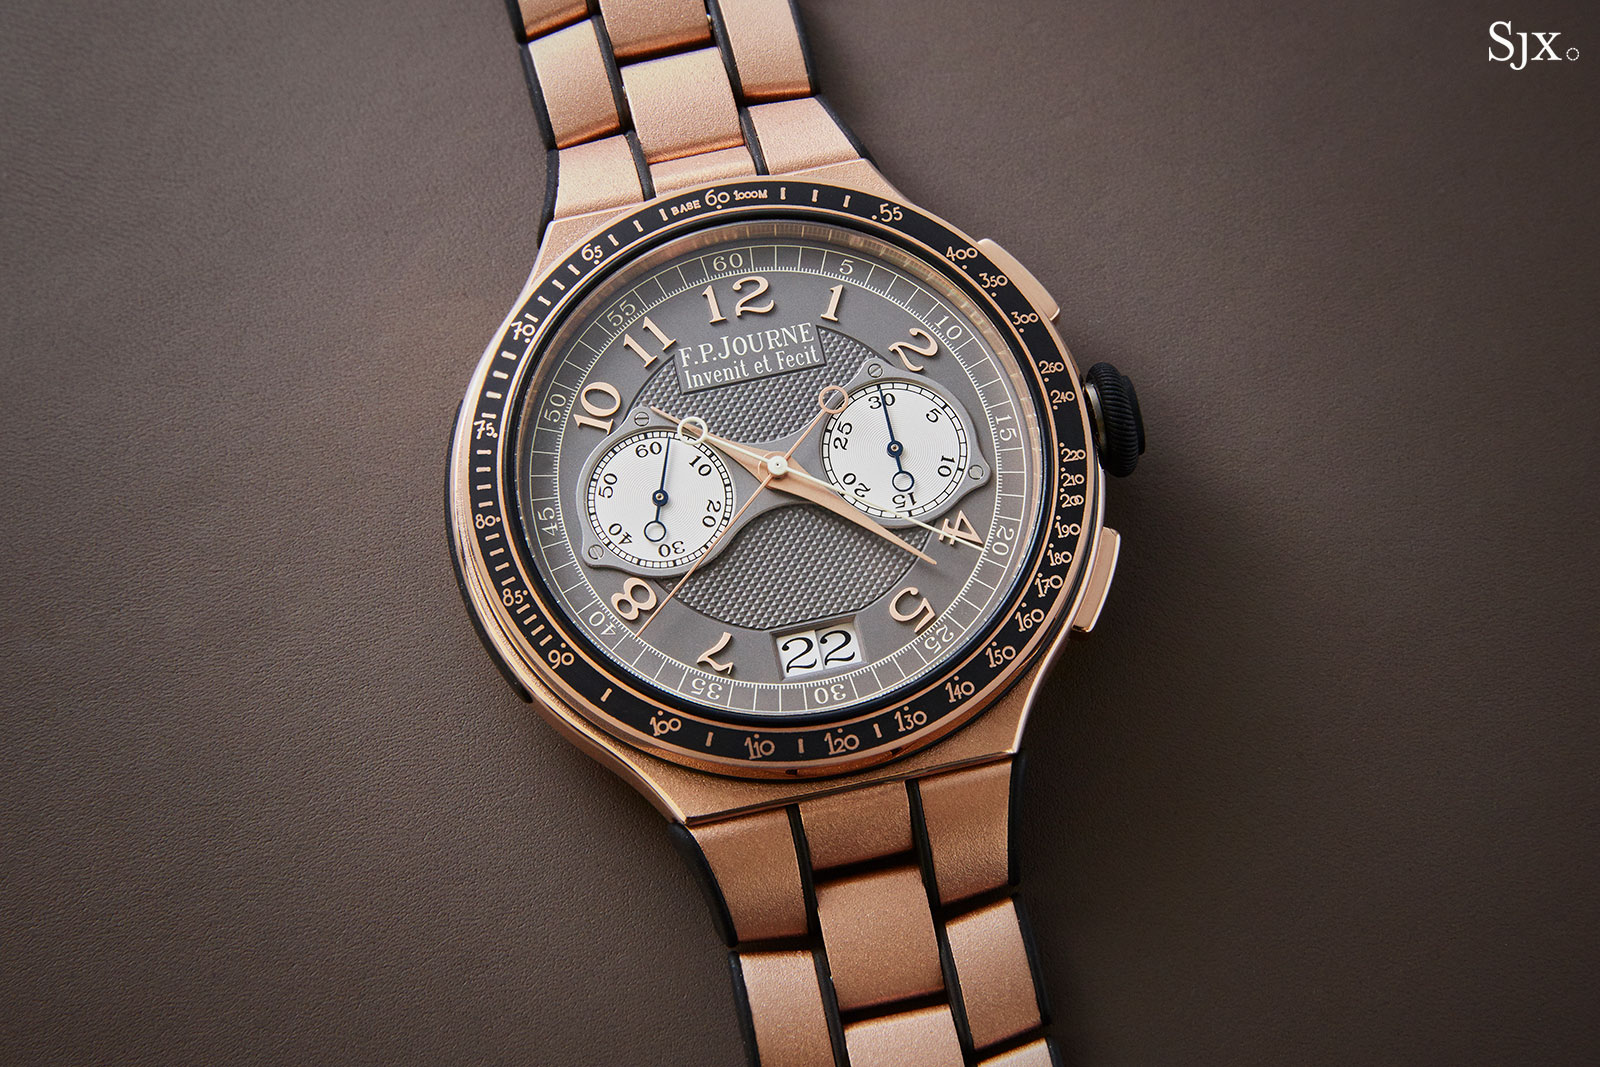 FP Journe Chronographe Monopoussoir Rattrapante rose gold 1